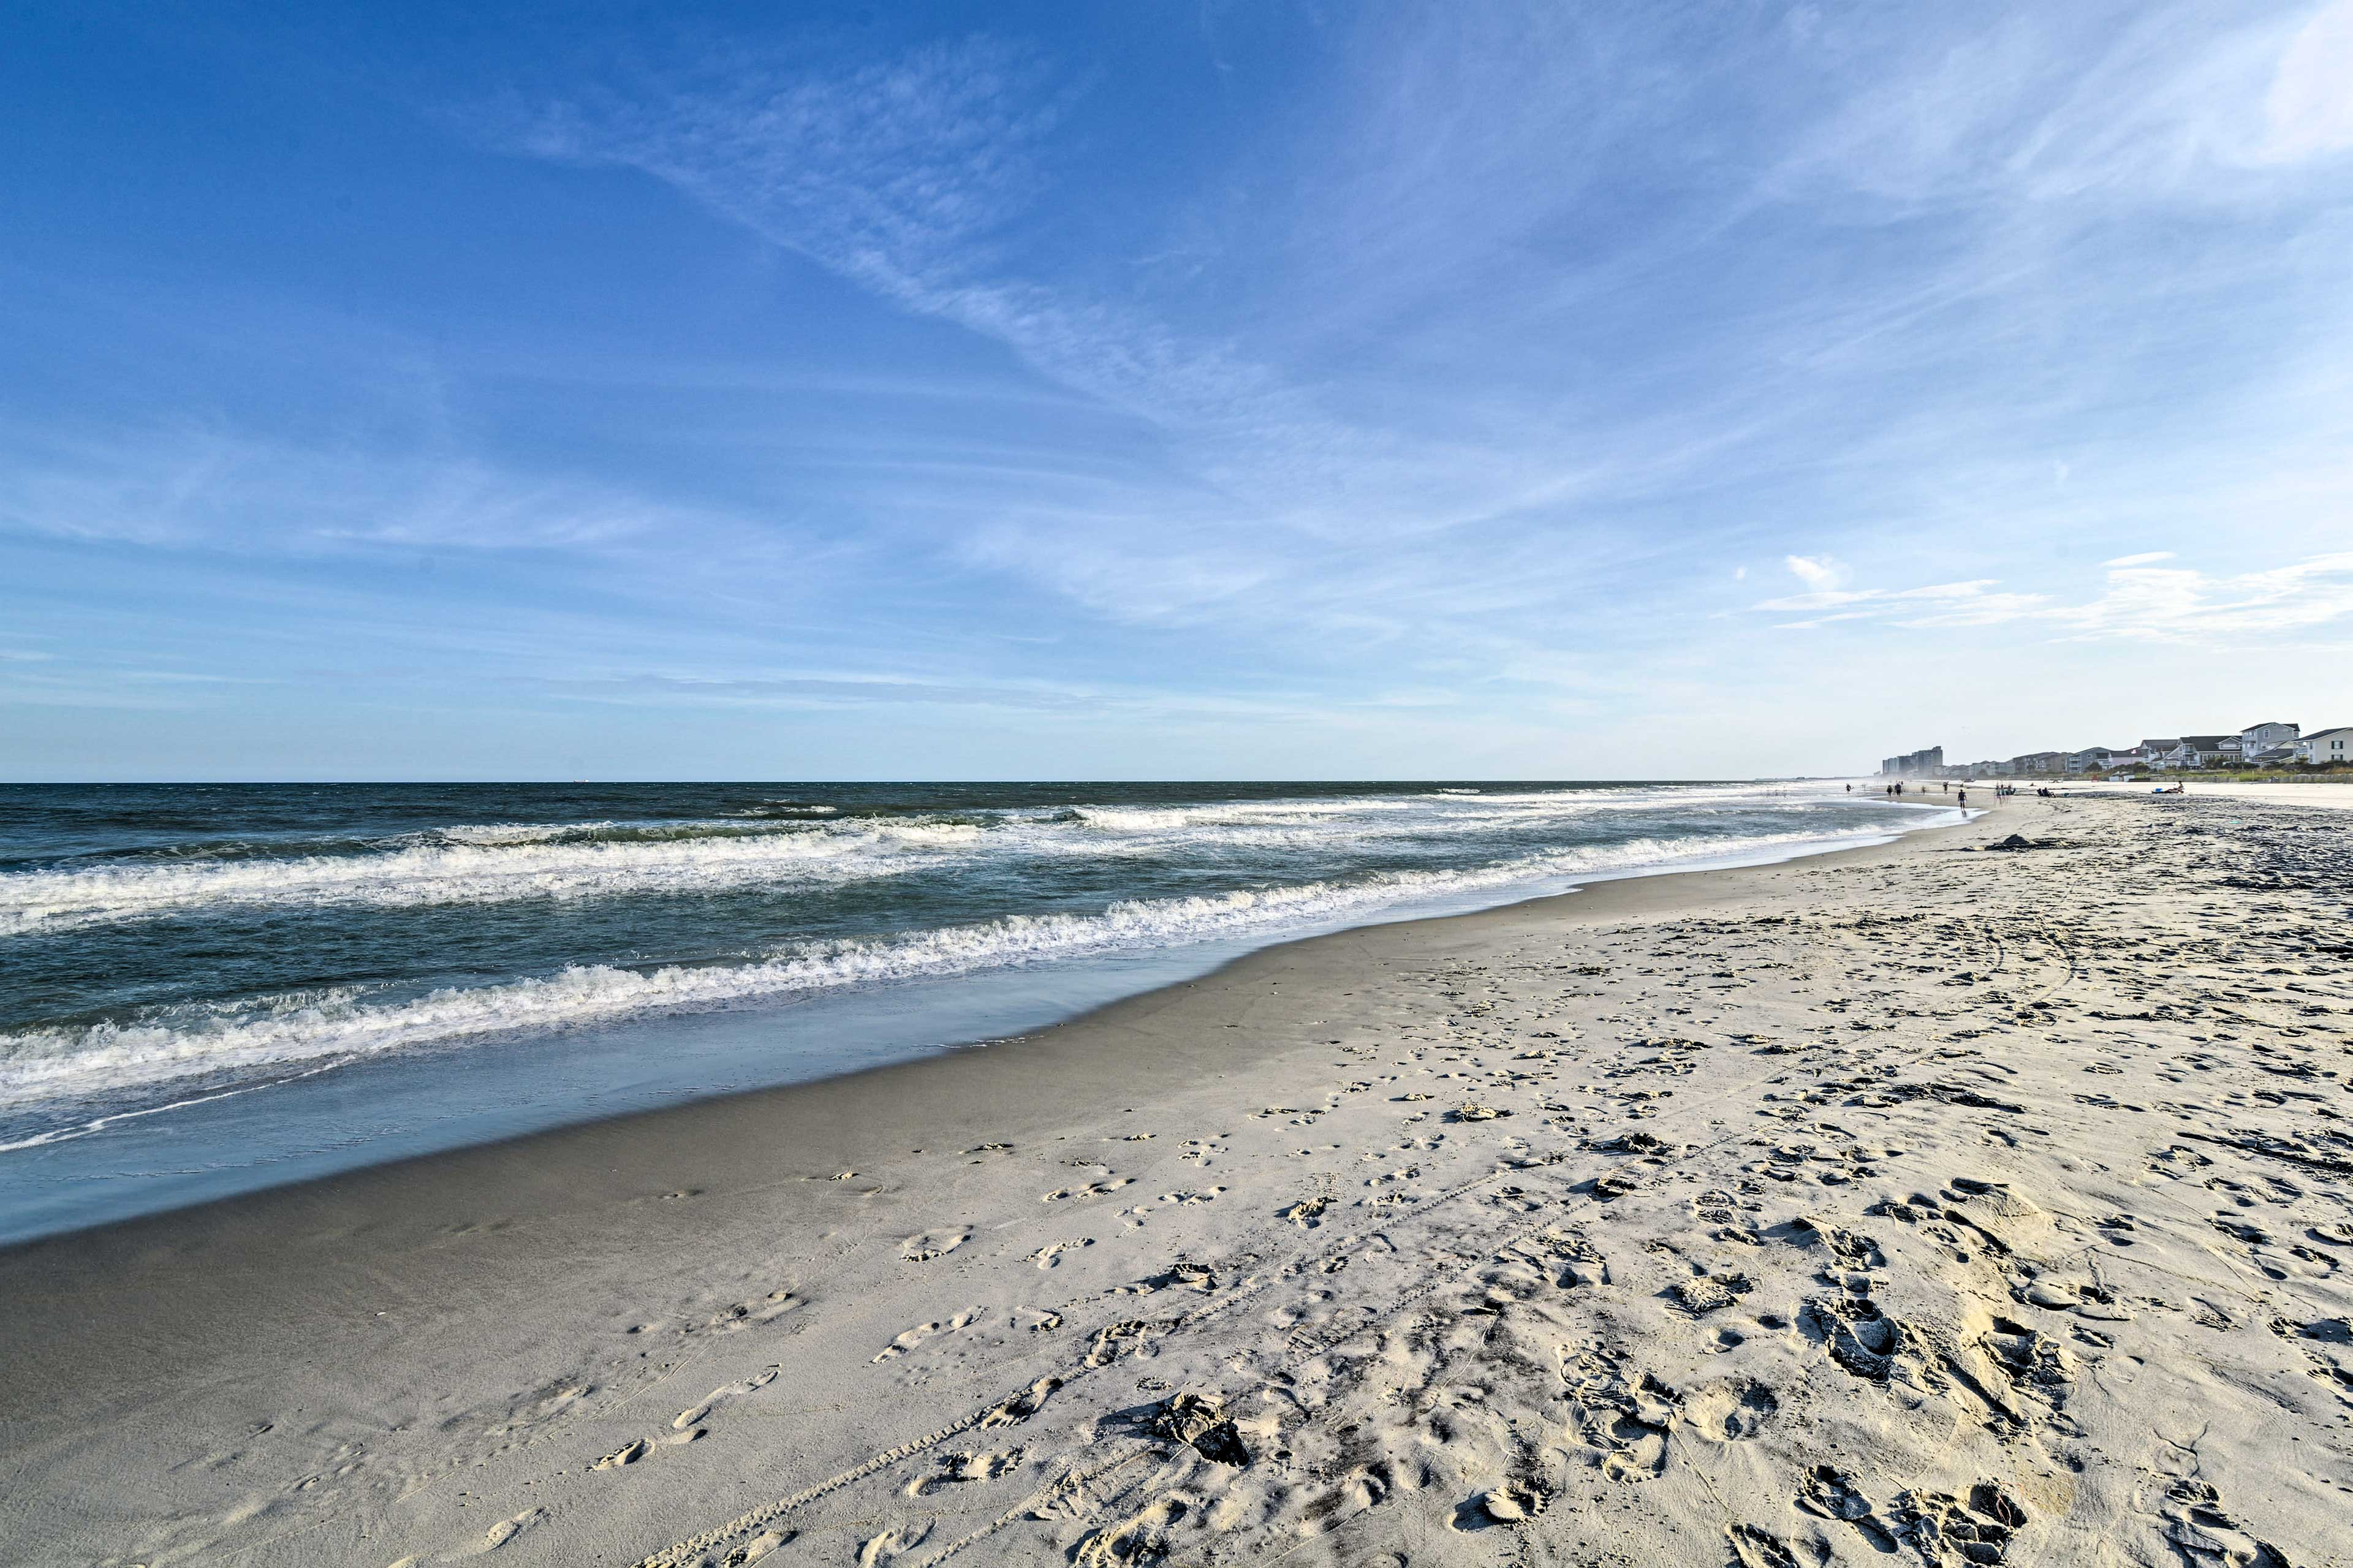 This property lies just across the street from South Carolina's famous beaches.